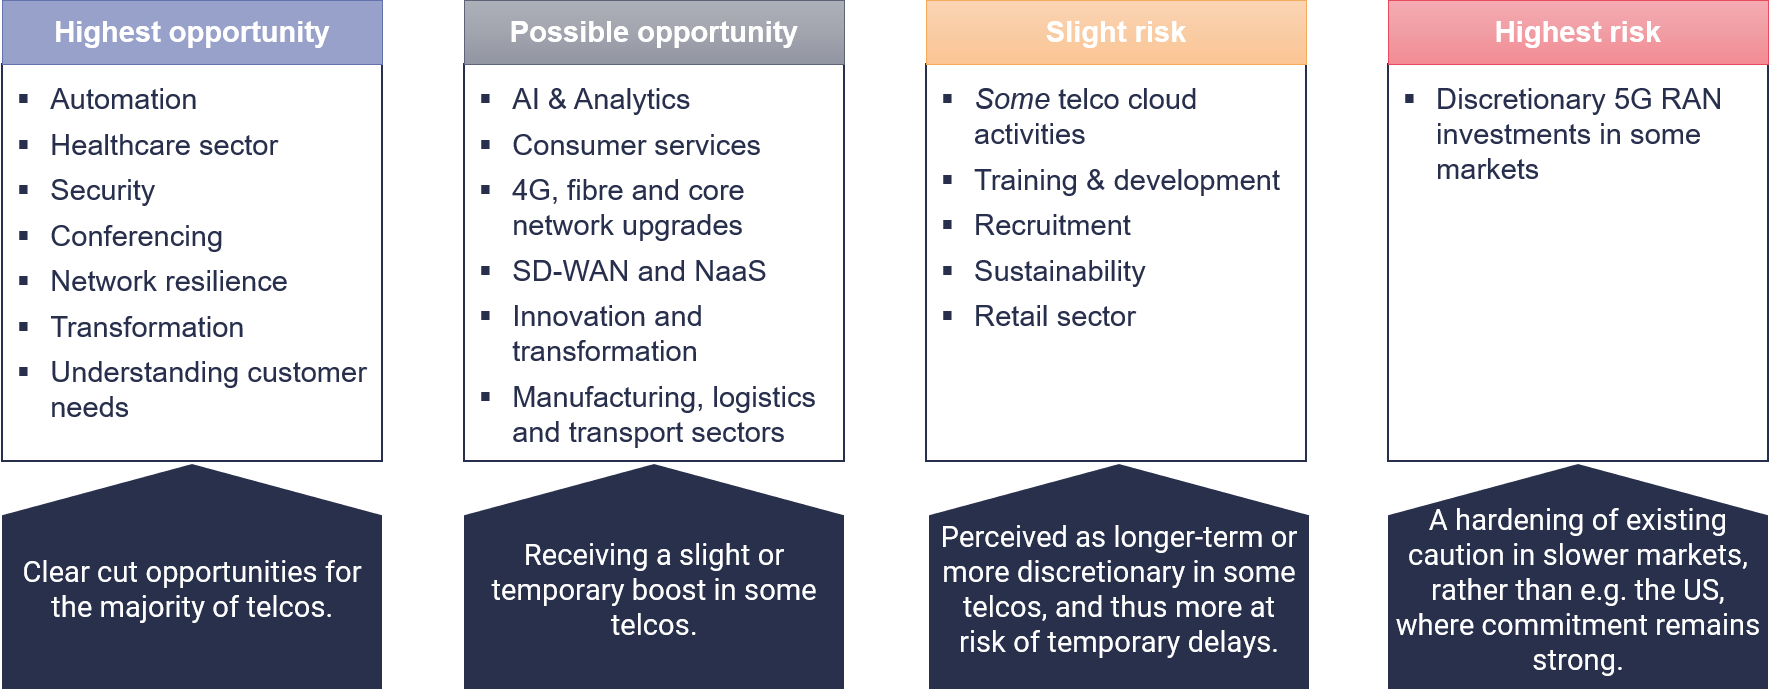 COVID-19 survey perceived risks to business